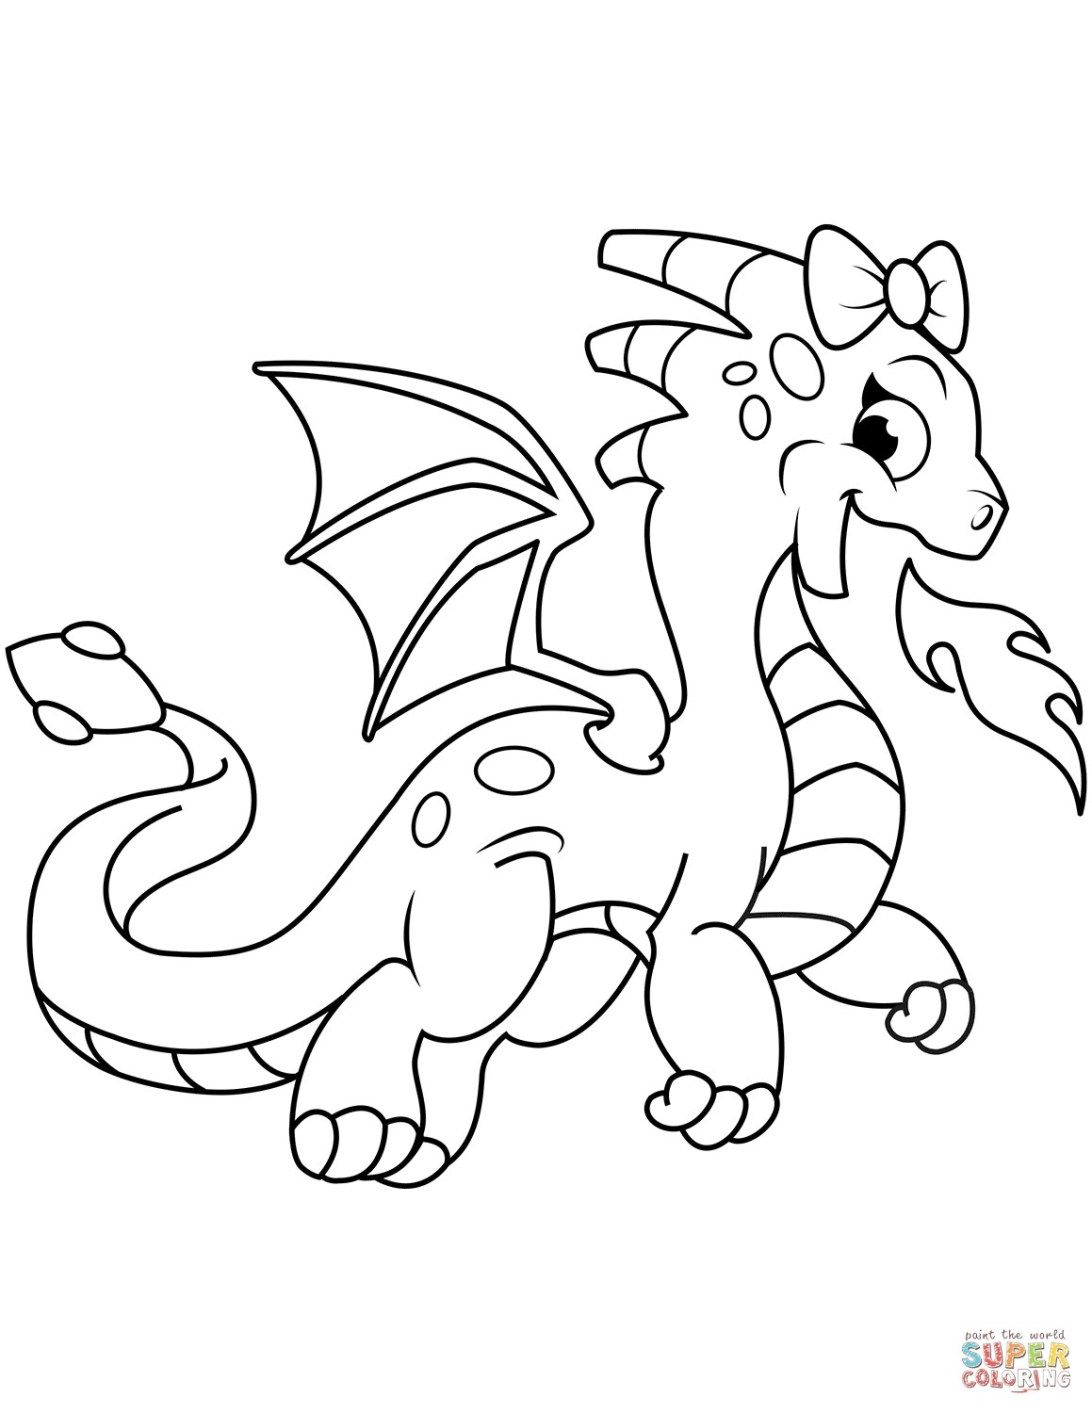 Great Image Of Free Dragon Coloring Pages Entitlementtrap Com Dragon Silhouette Dragon Coloring Page Cartoon Coloring Pages